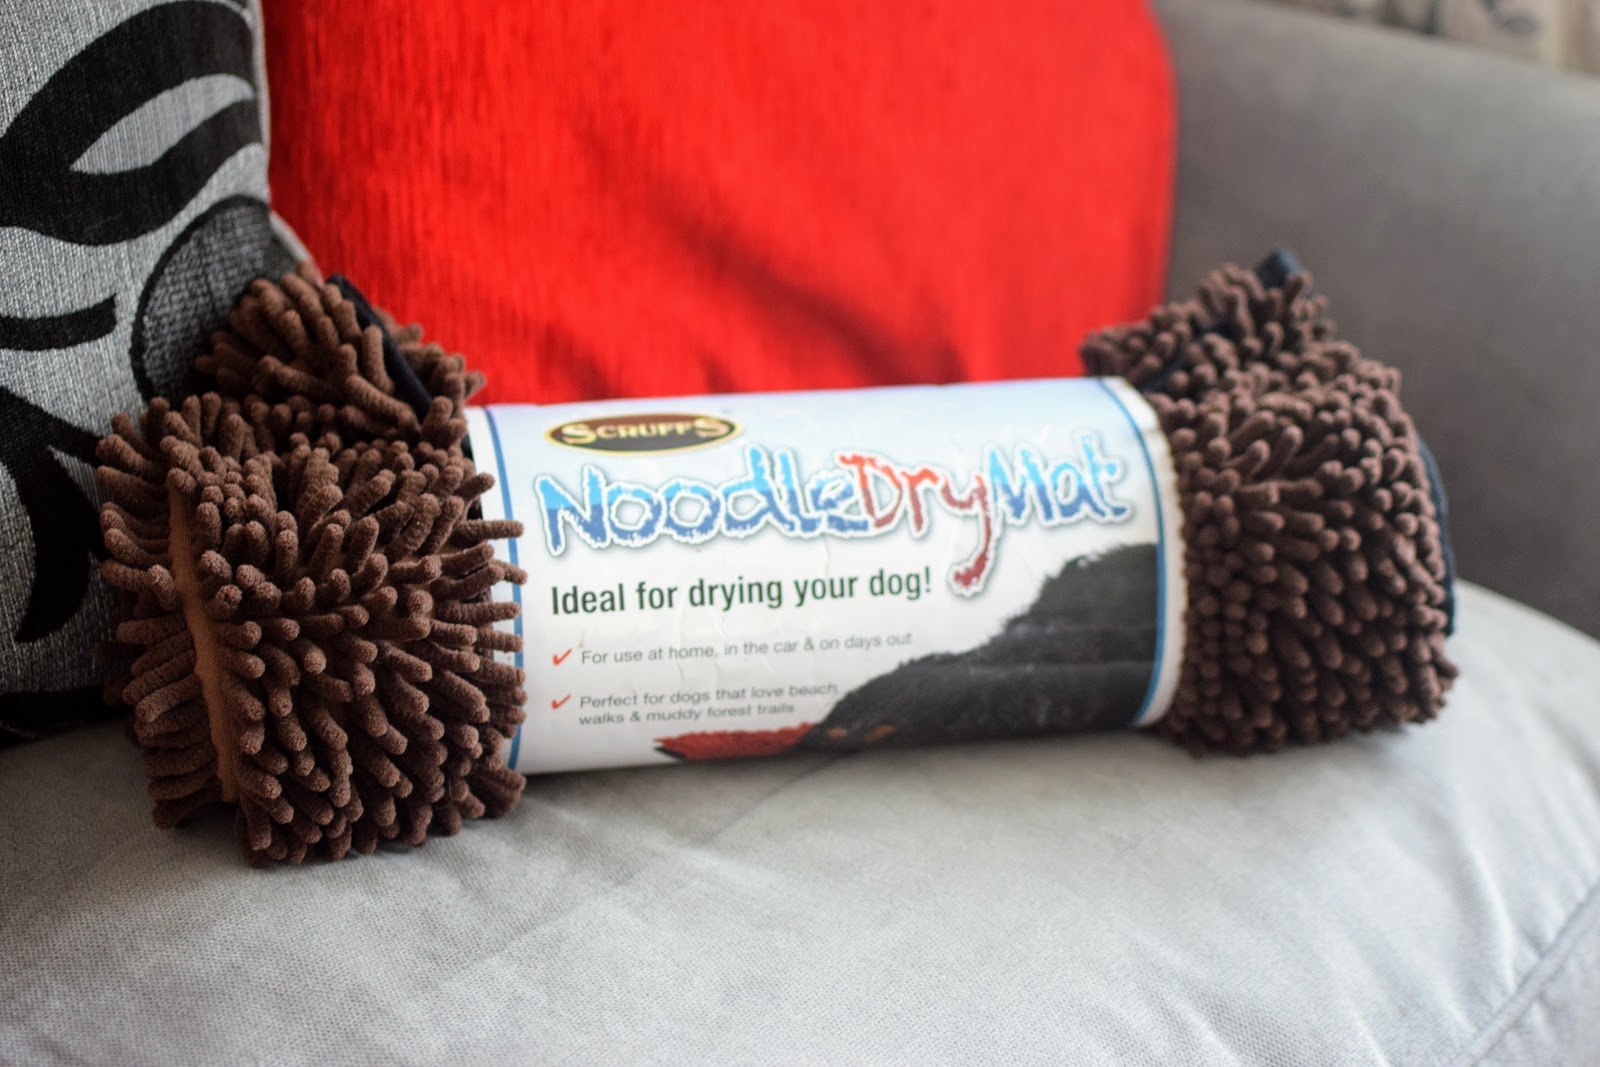 , Toby Dog: Walks and Water Play + Win A Scruffs Noodle Dry Mat